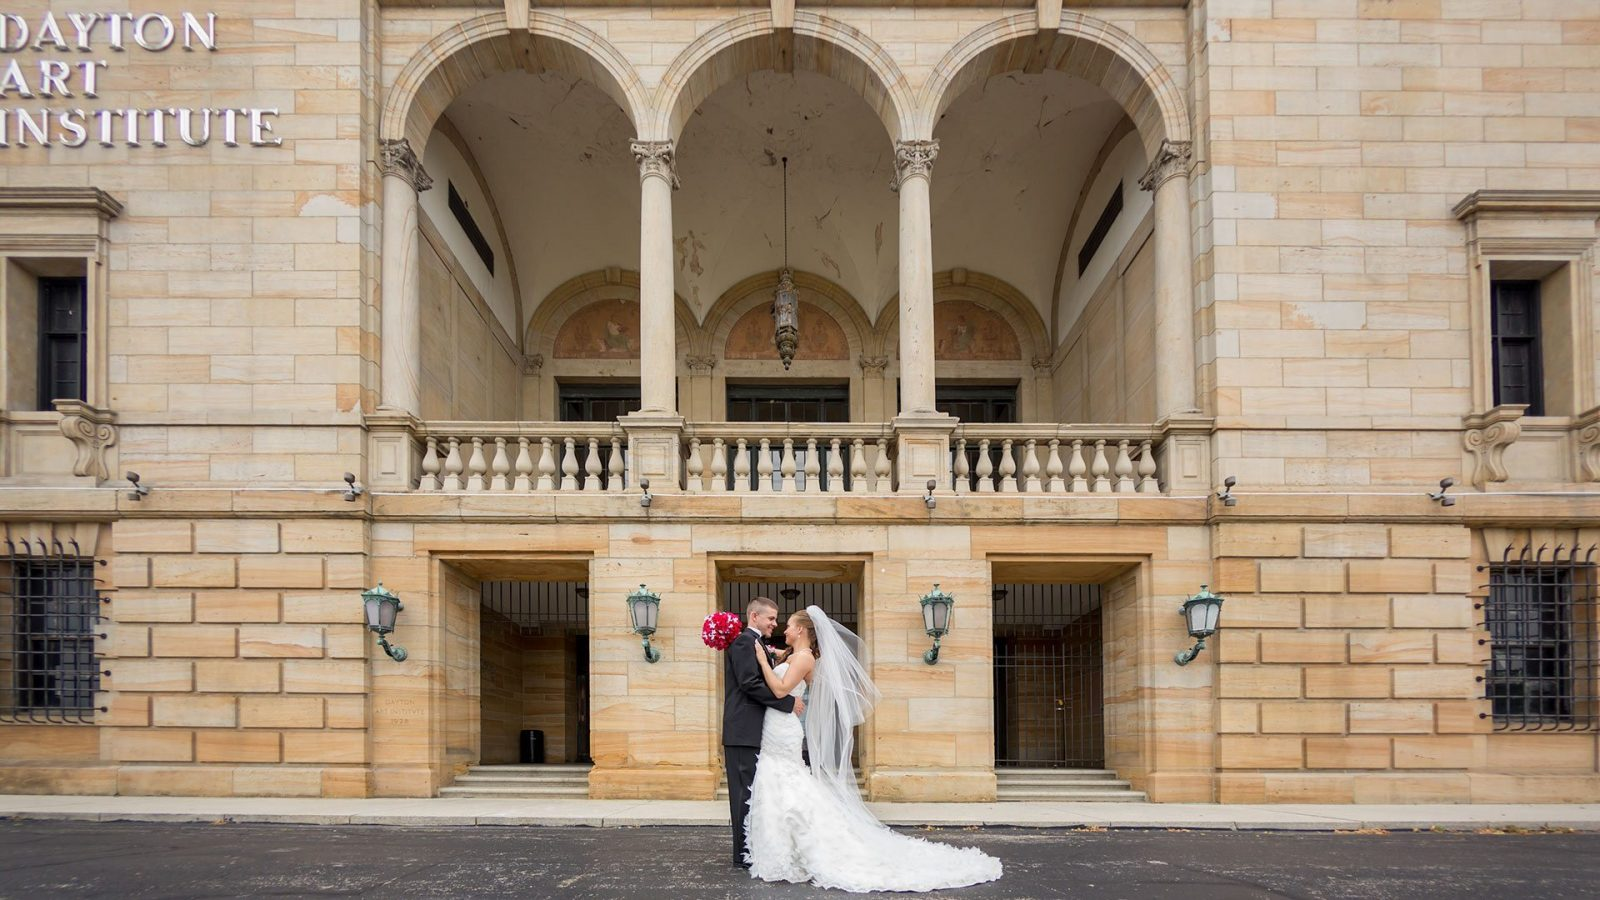 Dayton Art Institute Weddings | Wedding Venues in Dayton | Columbus Wedding Photographers | Wedding Photographers in Cincinnati | Dayton Wedding Photographers | Dayton Wedding Photo Locations | Top Dayton Wedding Vendors